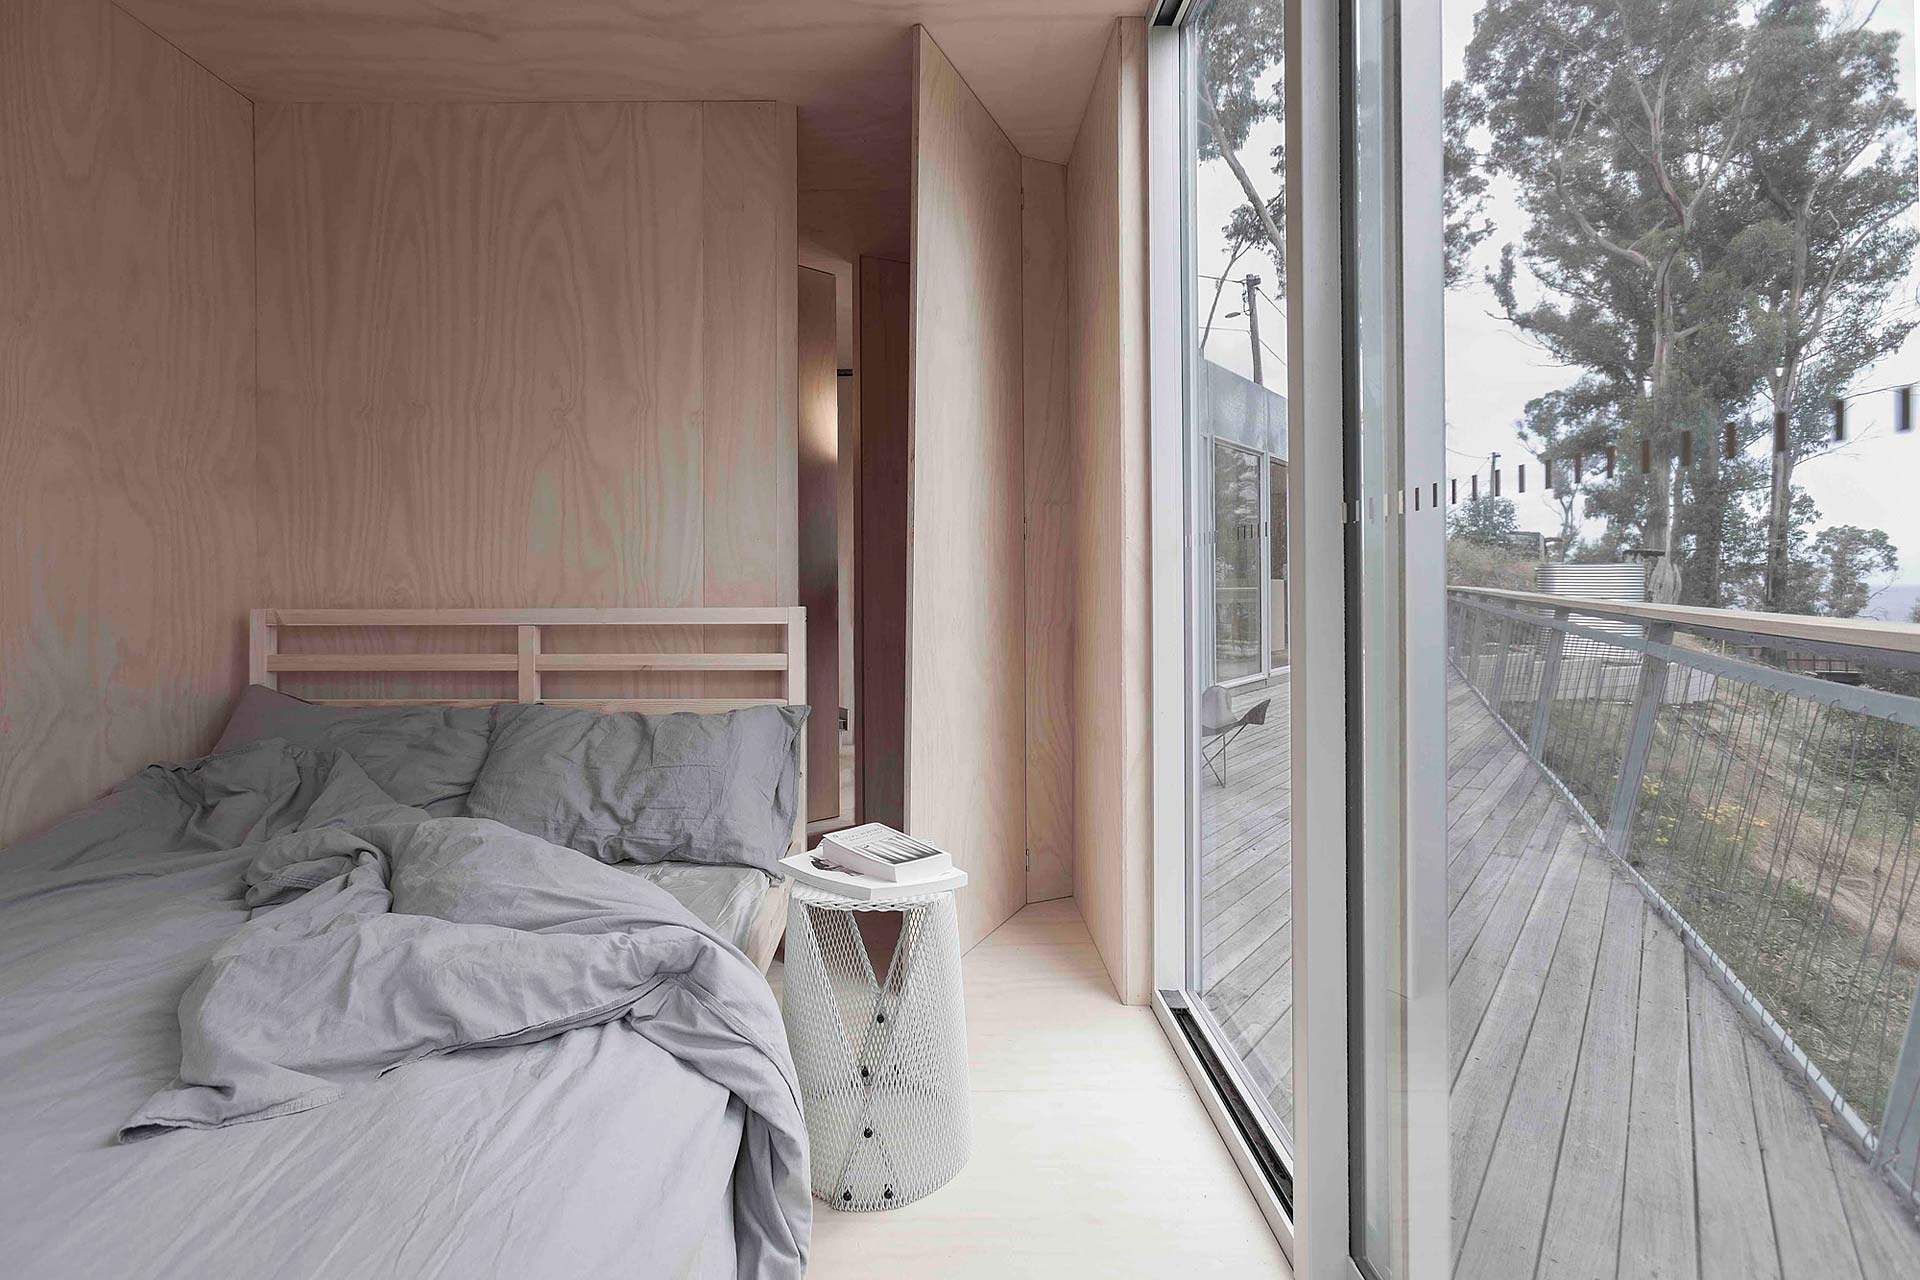 wye-river-container-house-3.jpg